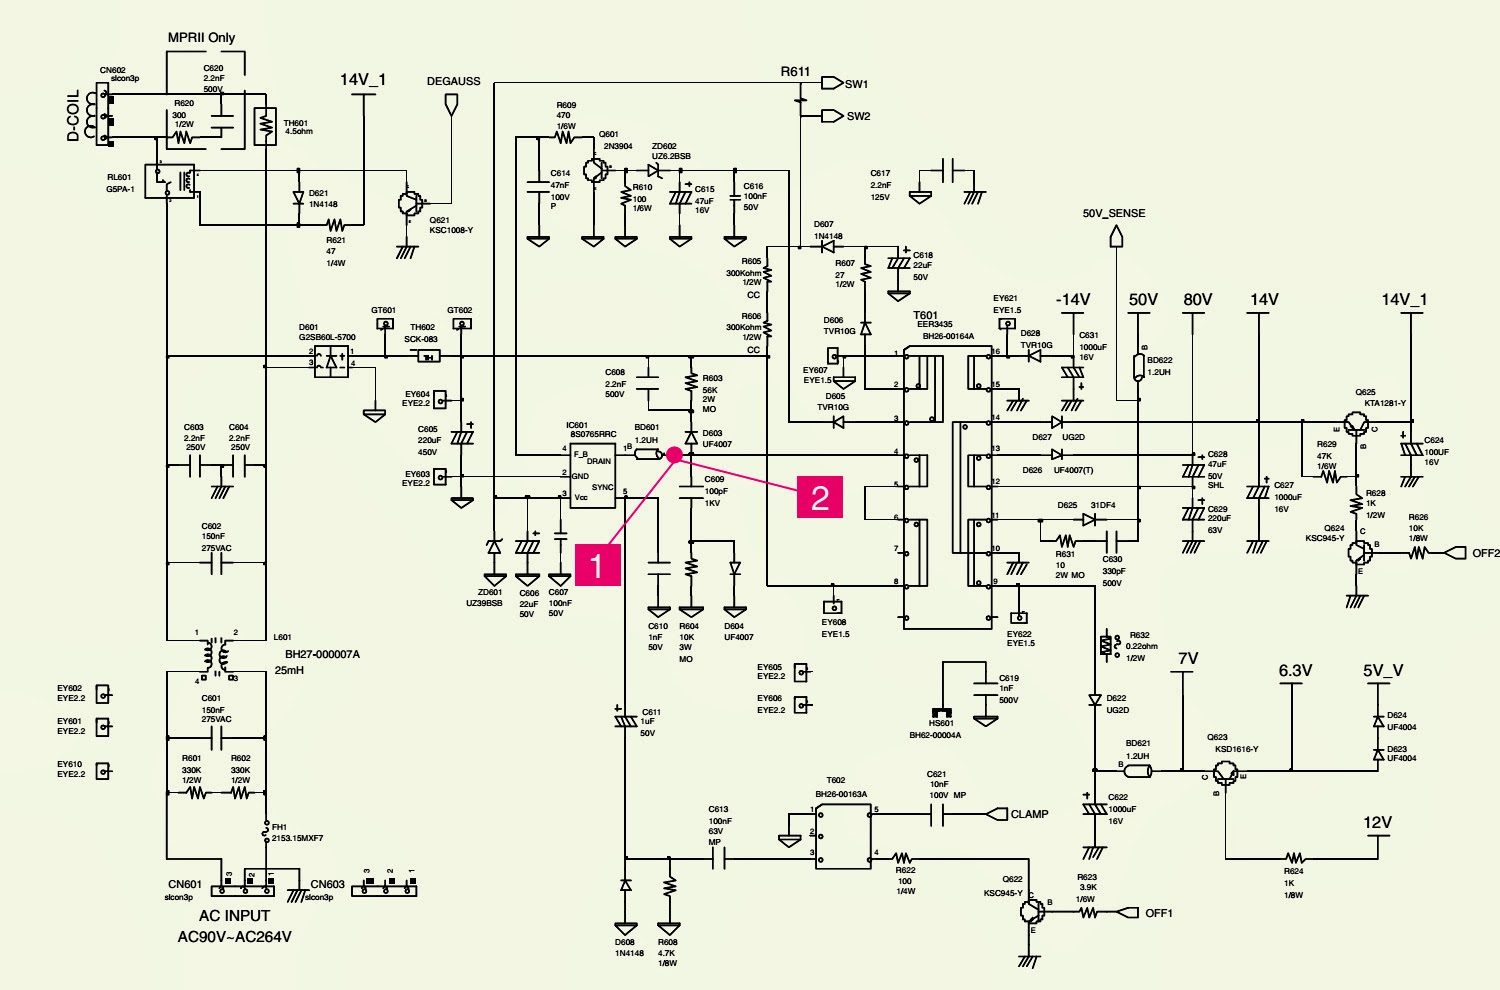 hight resolution of i am looking for a circuit diagram for a samsung sv dvd3e as my repairer needs it to complete the repair of it samsung sv dvd3e dvd player vcr question